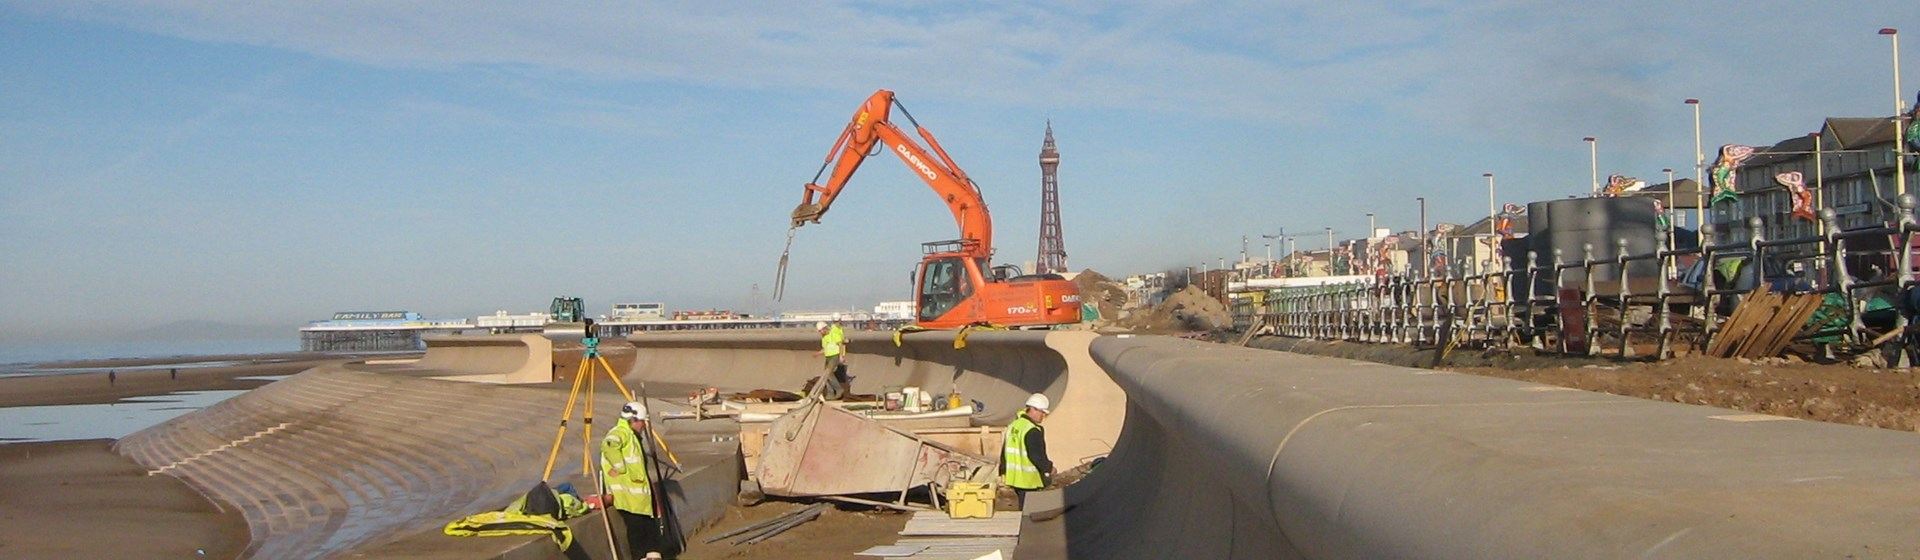 Blackpool_Wave_wall,_berm_slab_and_revetment.jpg